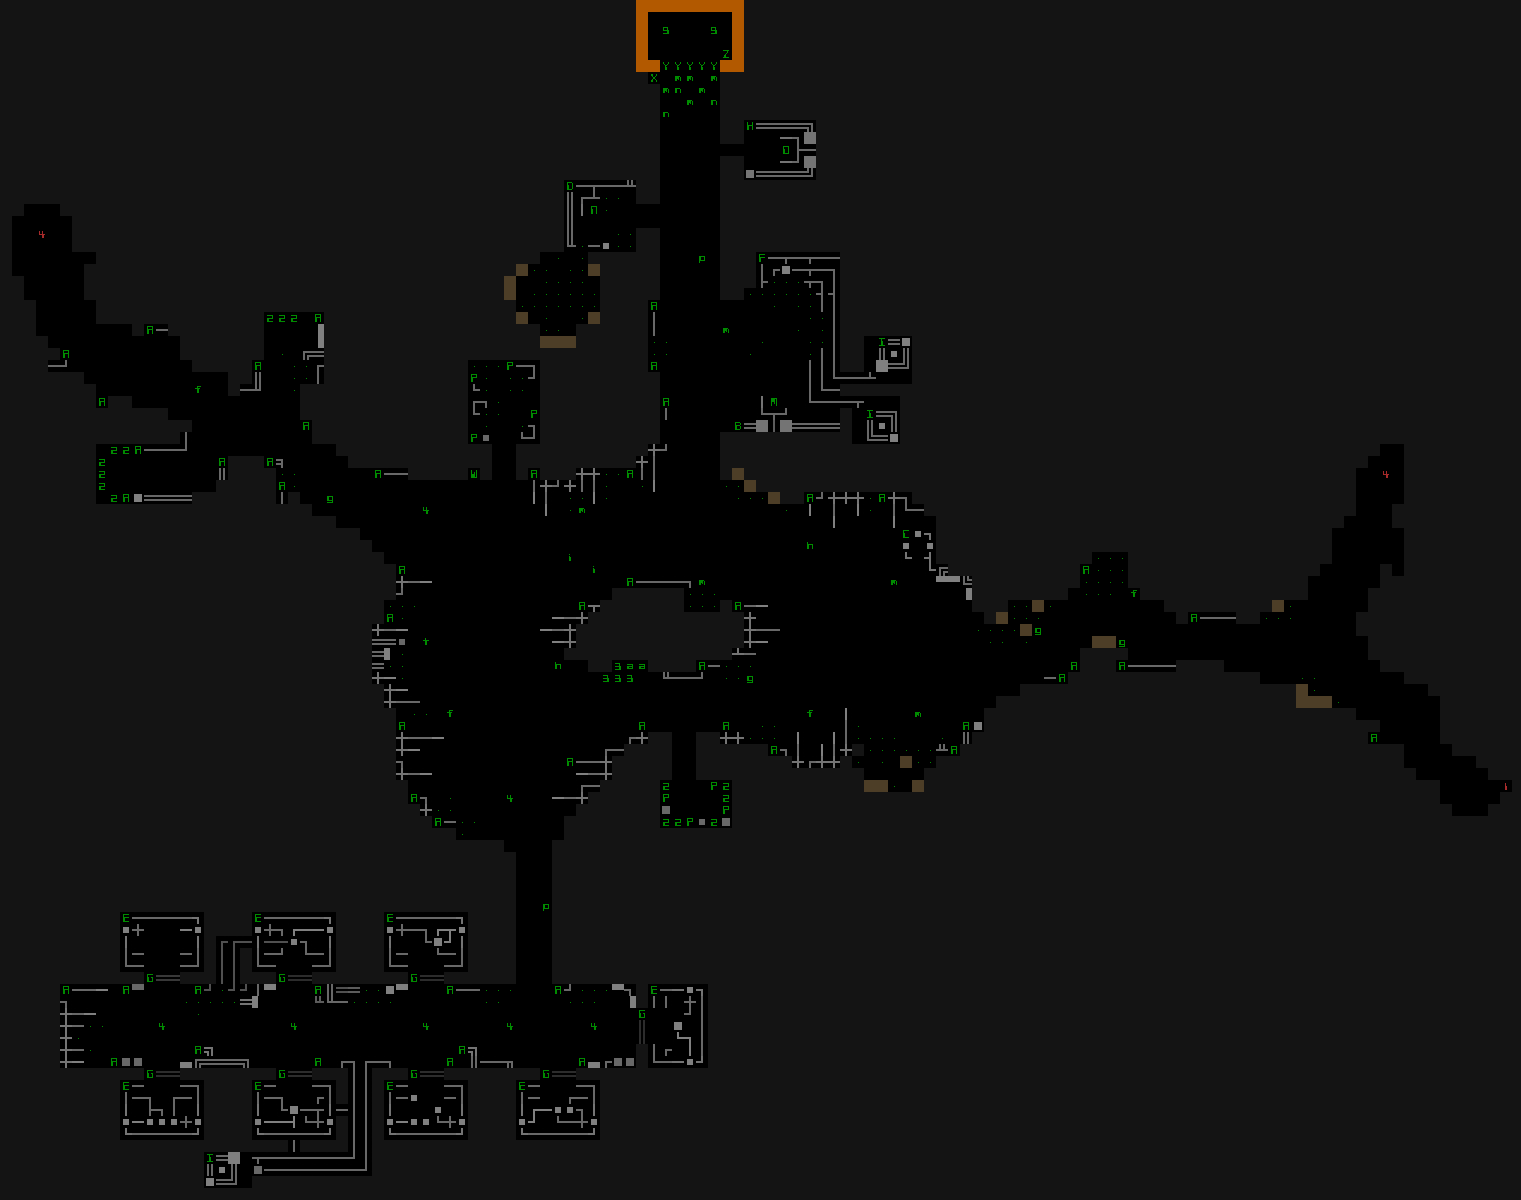 cogmind_level_design_exiles_map_prefab_rexpaint_destroyed